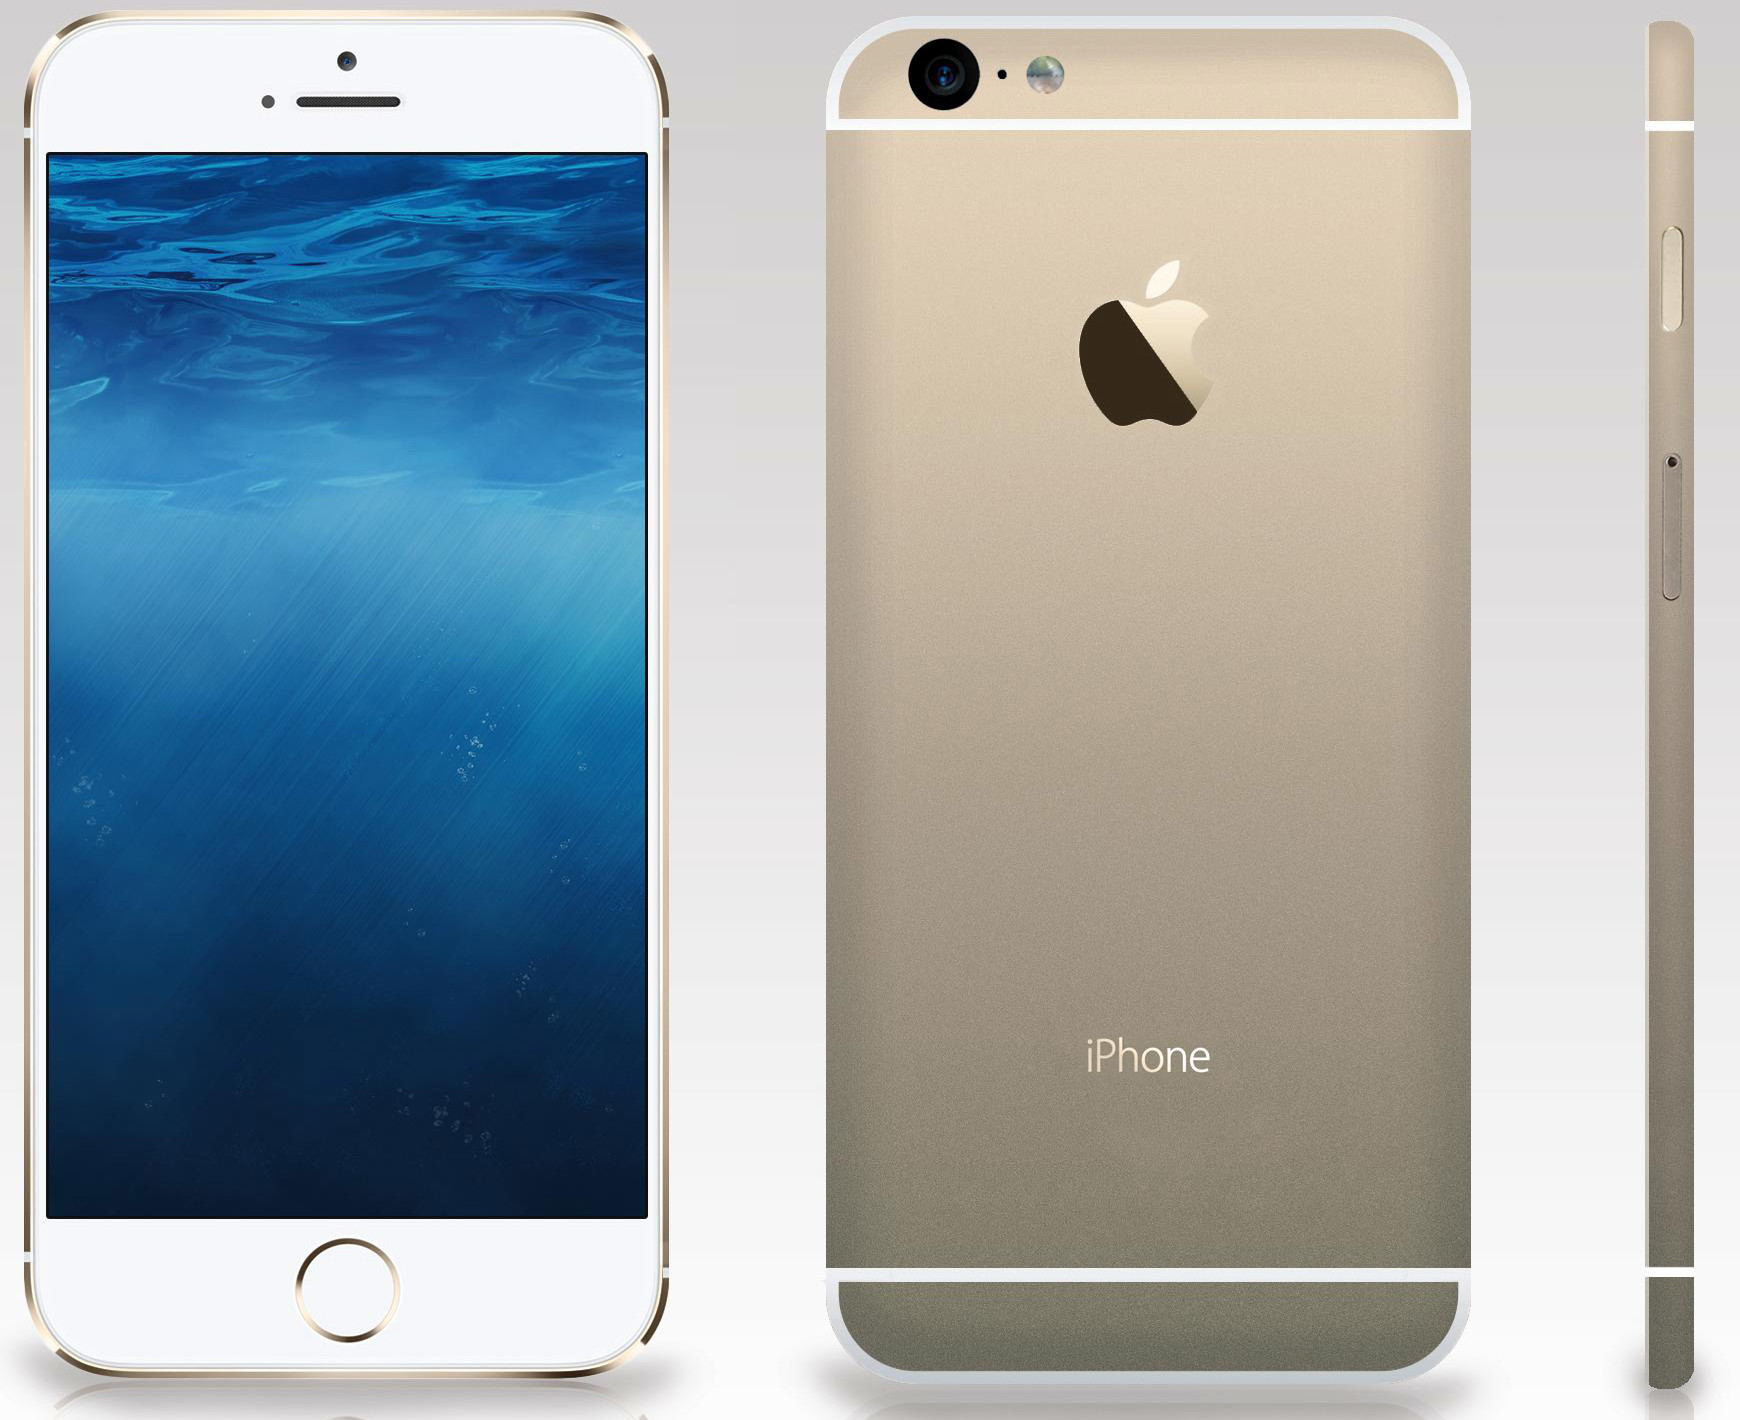 Iphone Model A1586 >> Apple iPhone 6 A1586 16GB - Specs and Price - Phonegg